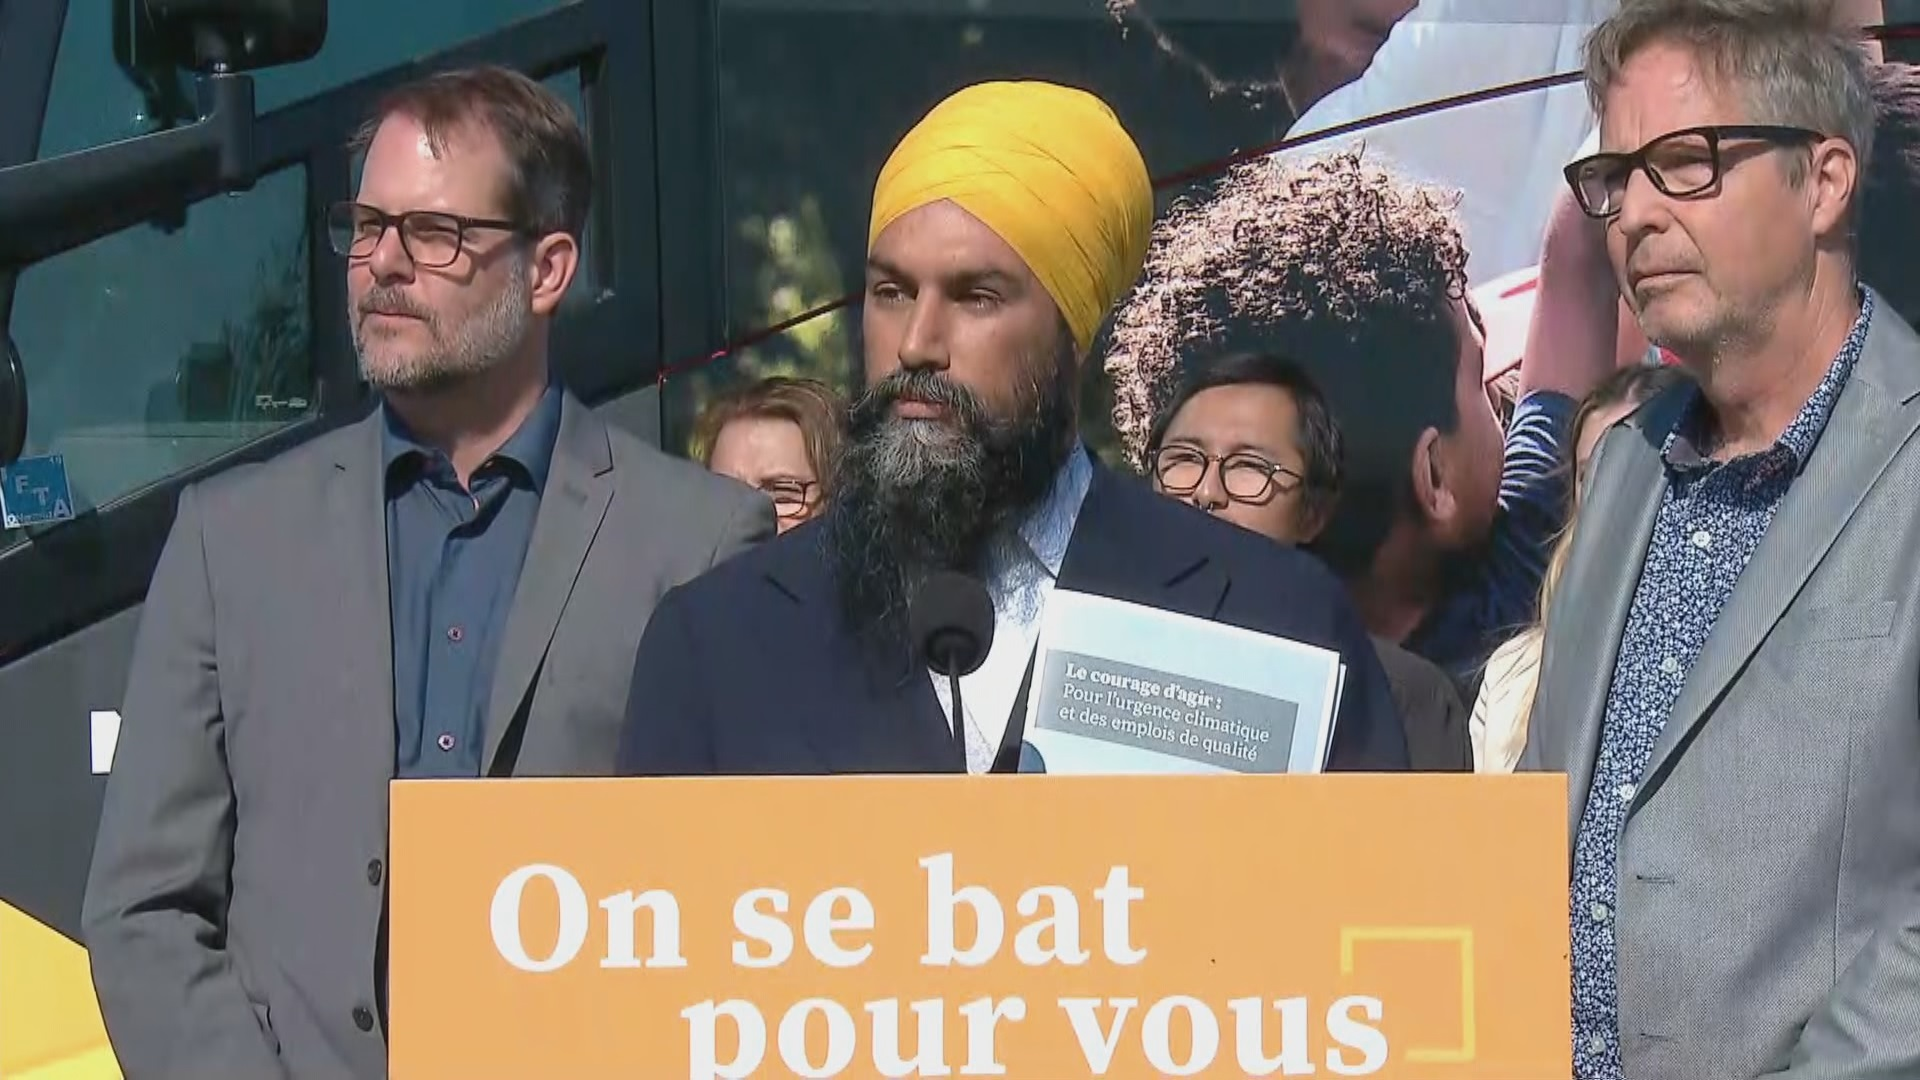 Federal Election 2019: NDP Leader Jagmeet Singh says he's opposed to Bill 21, but focused on tackling climate crisis, health care